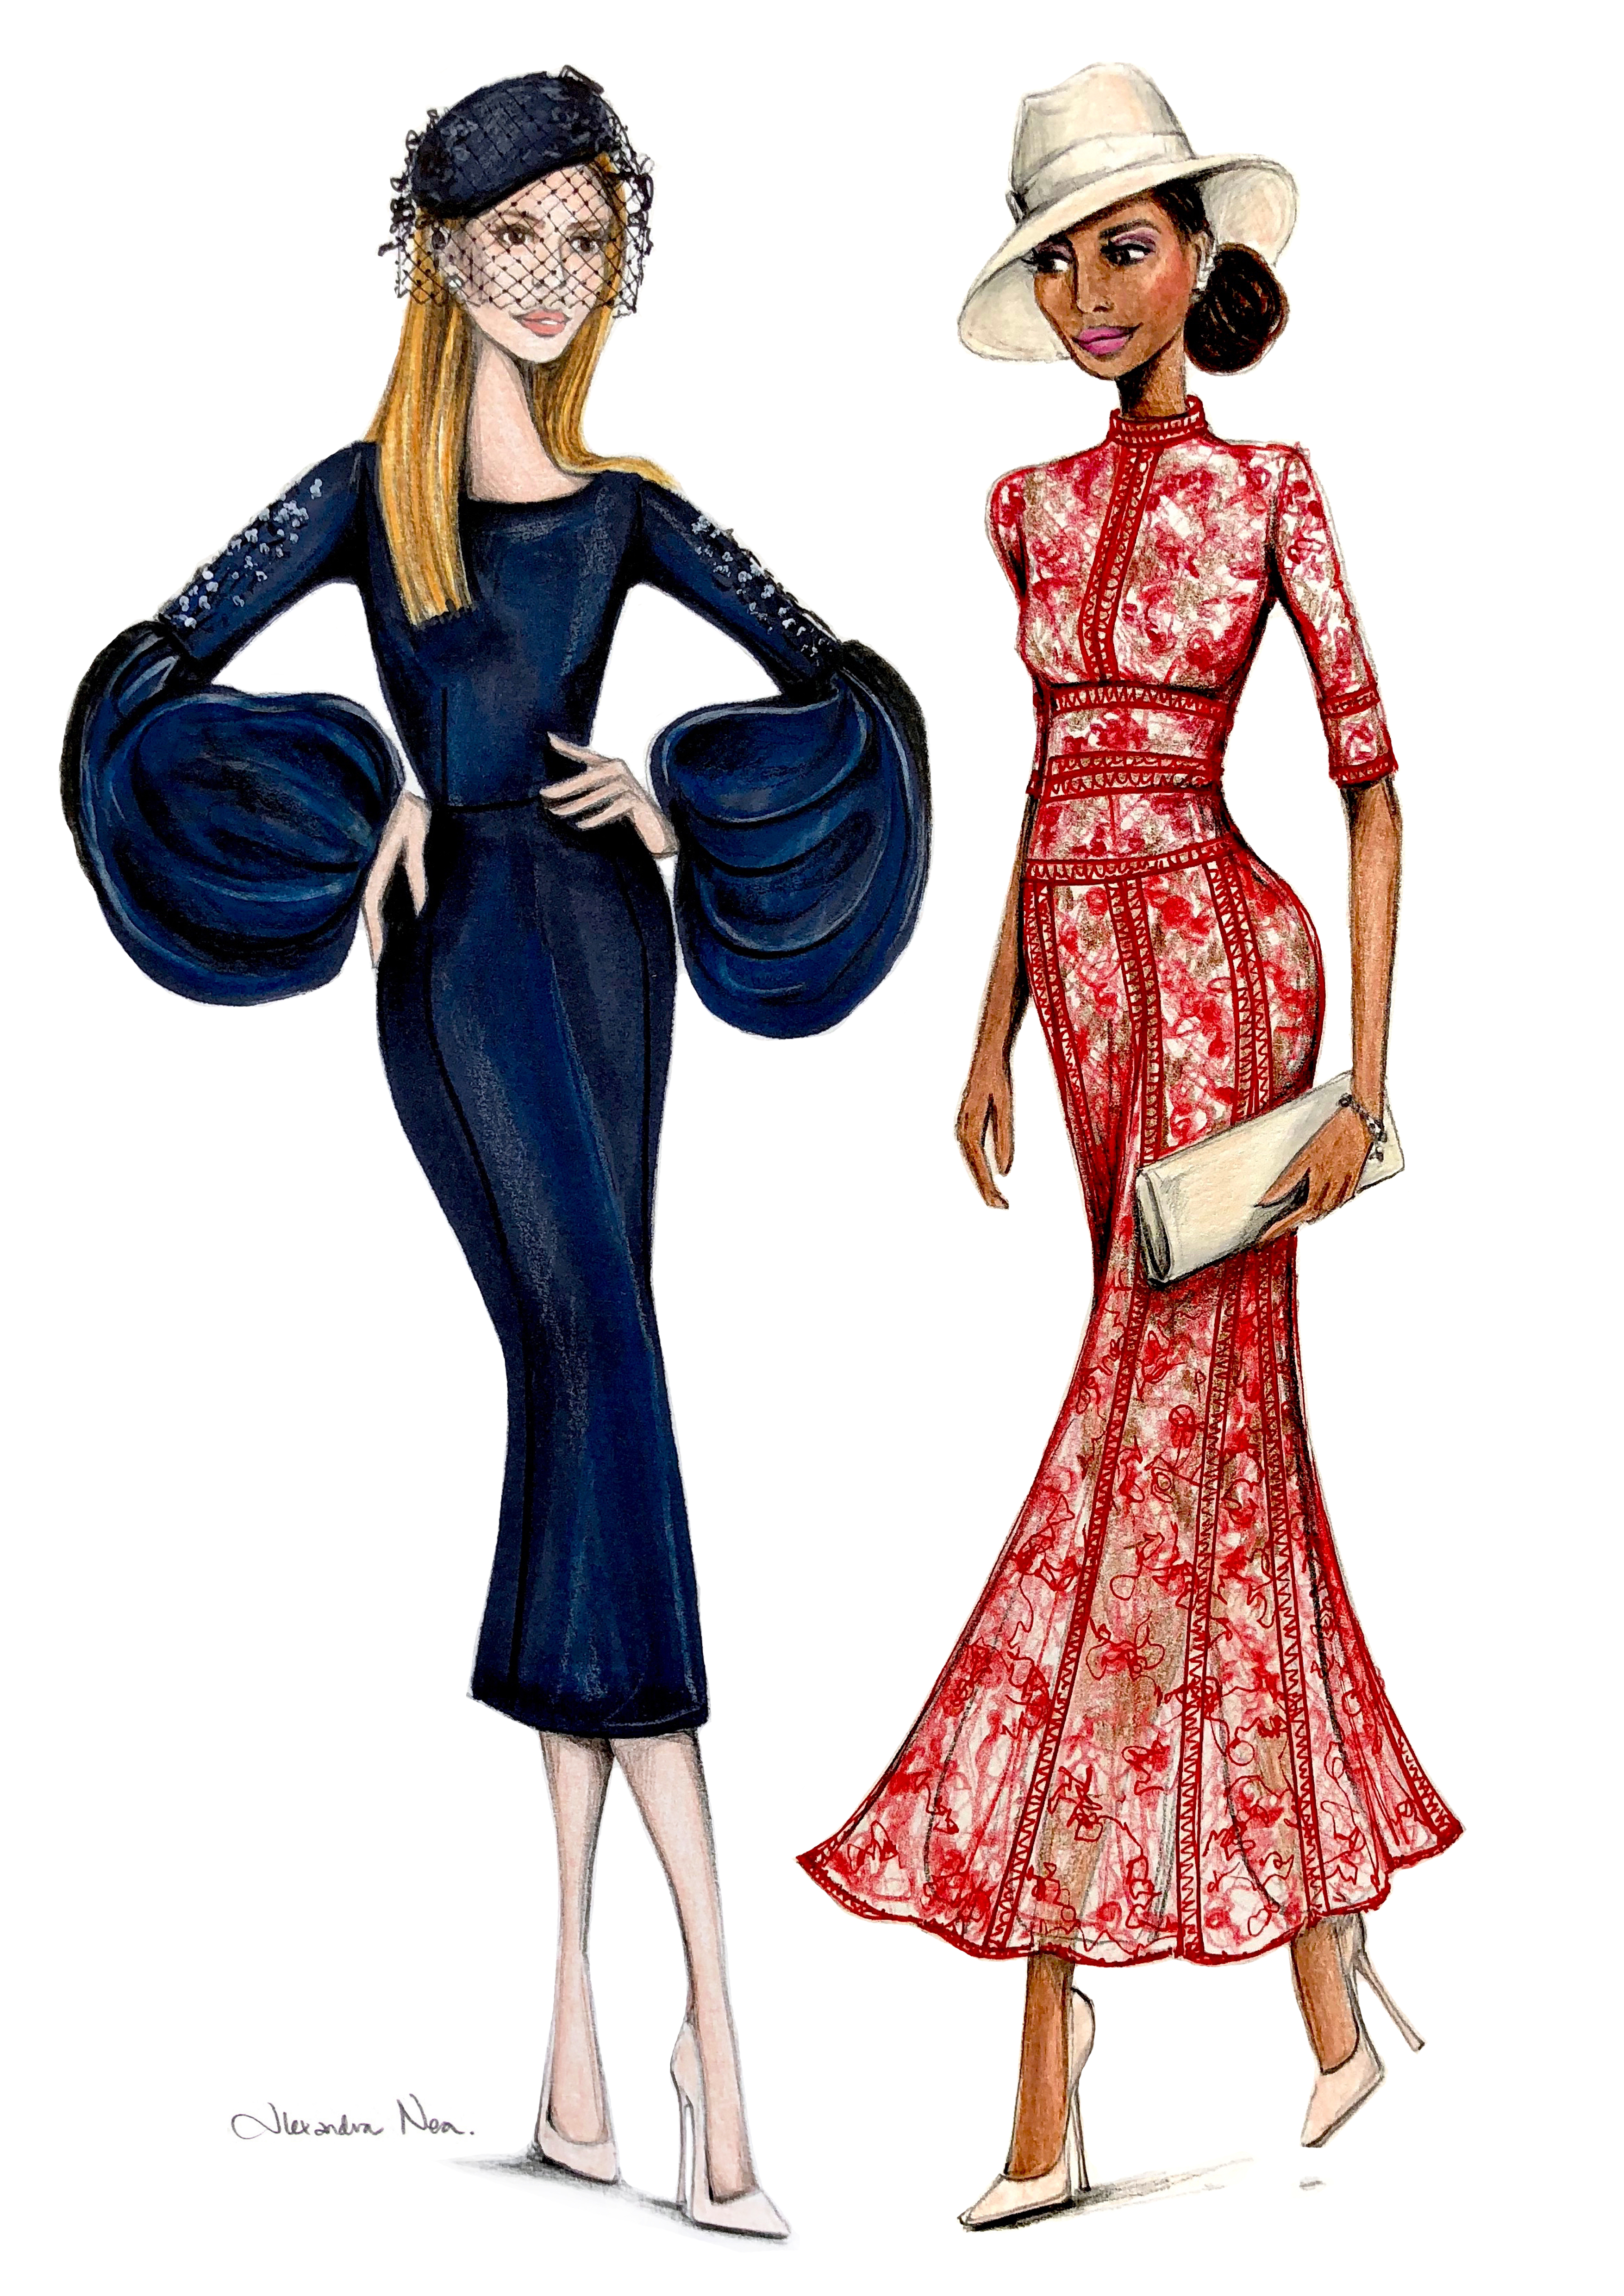 Illustration of royal wedding guests Sarah Rafferty and Gina Torres created by illustrator Alexandra Nea (Alexandra Nea)